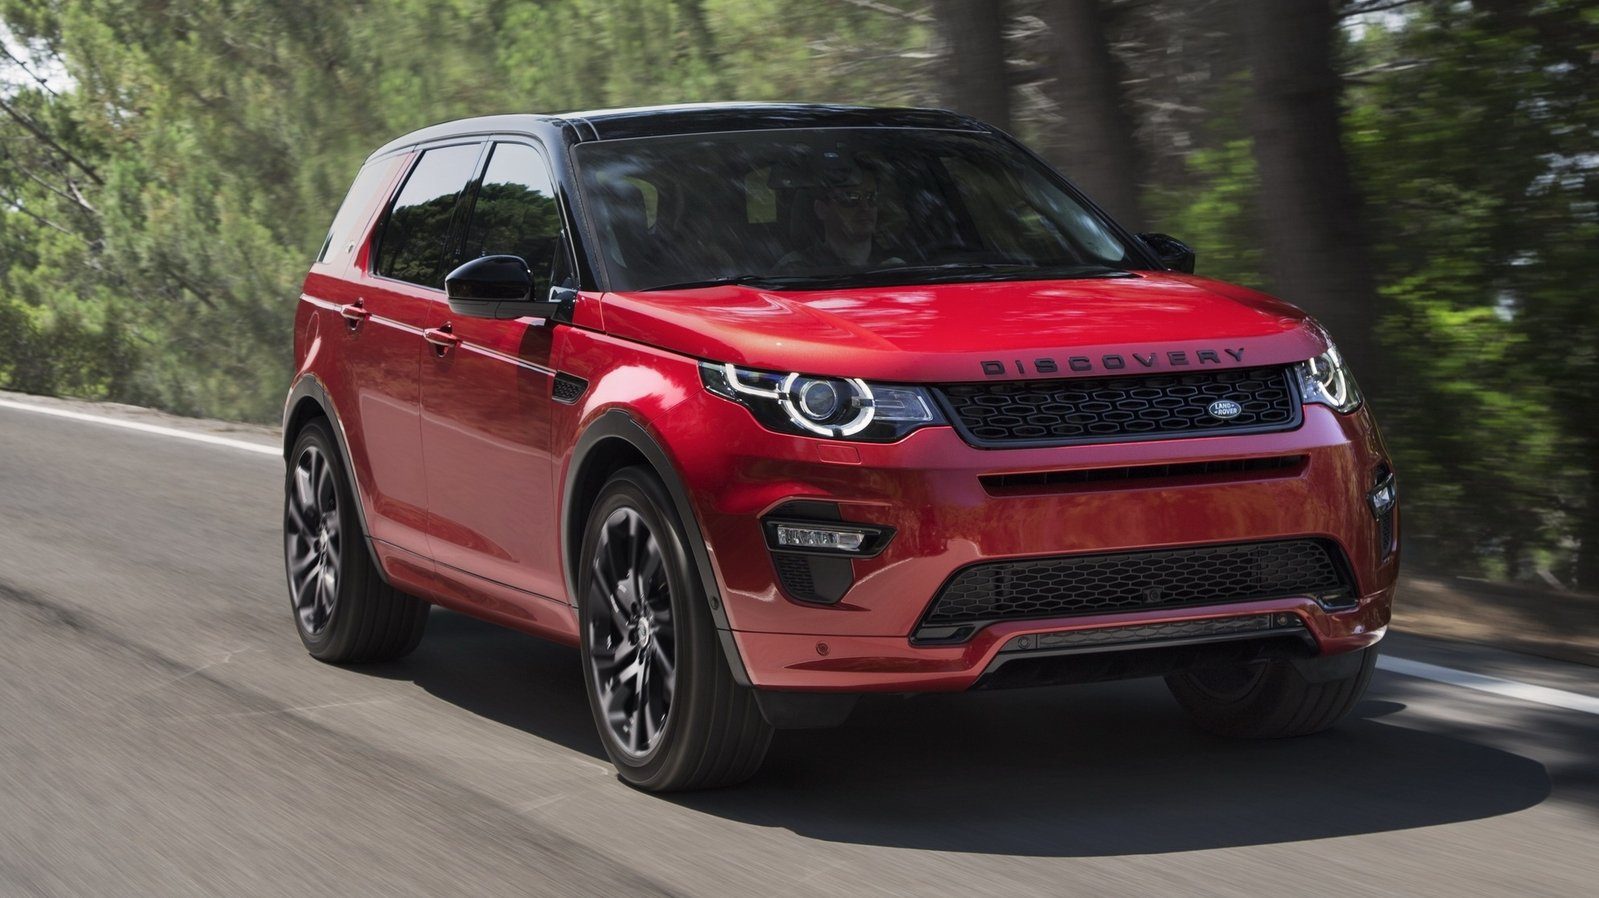 2017 Land Rover Discovery Sport Hse Lux >> 2017 Land Rover Discovery Sport | Top Speed